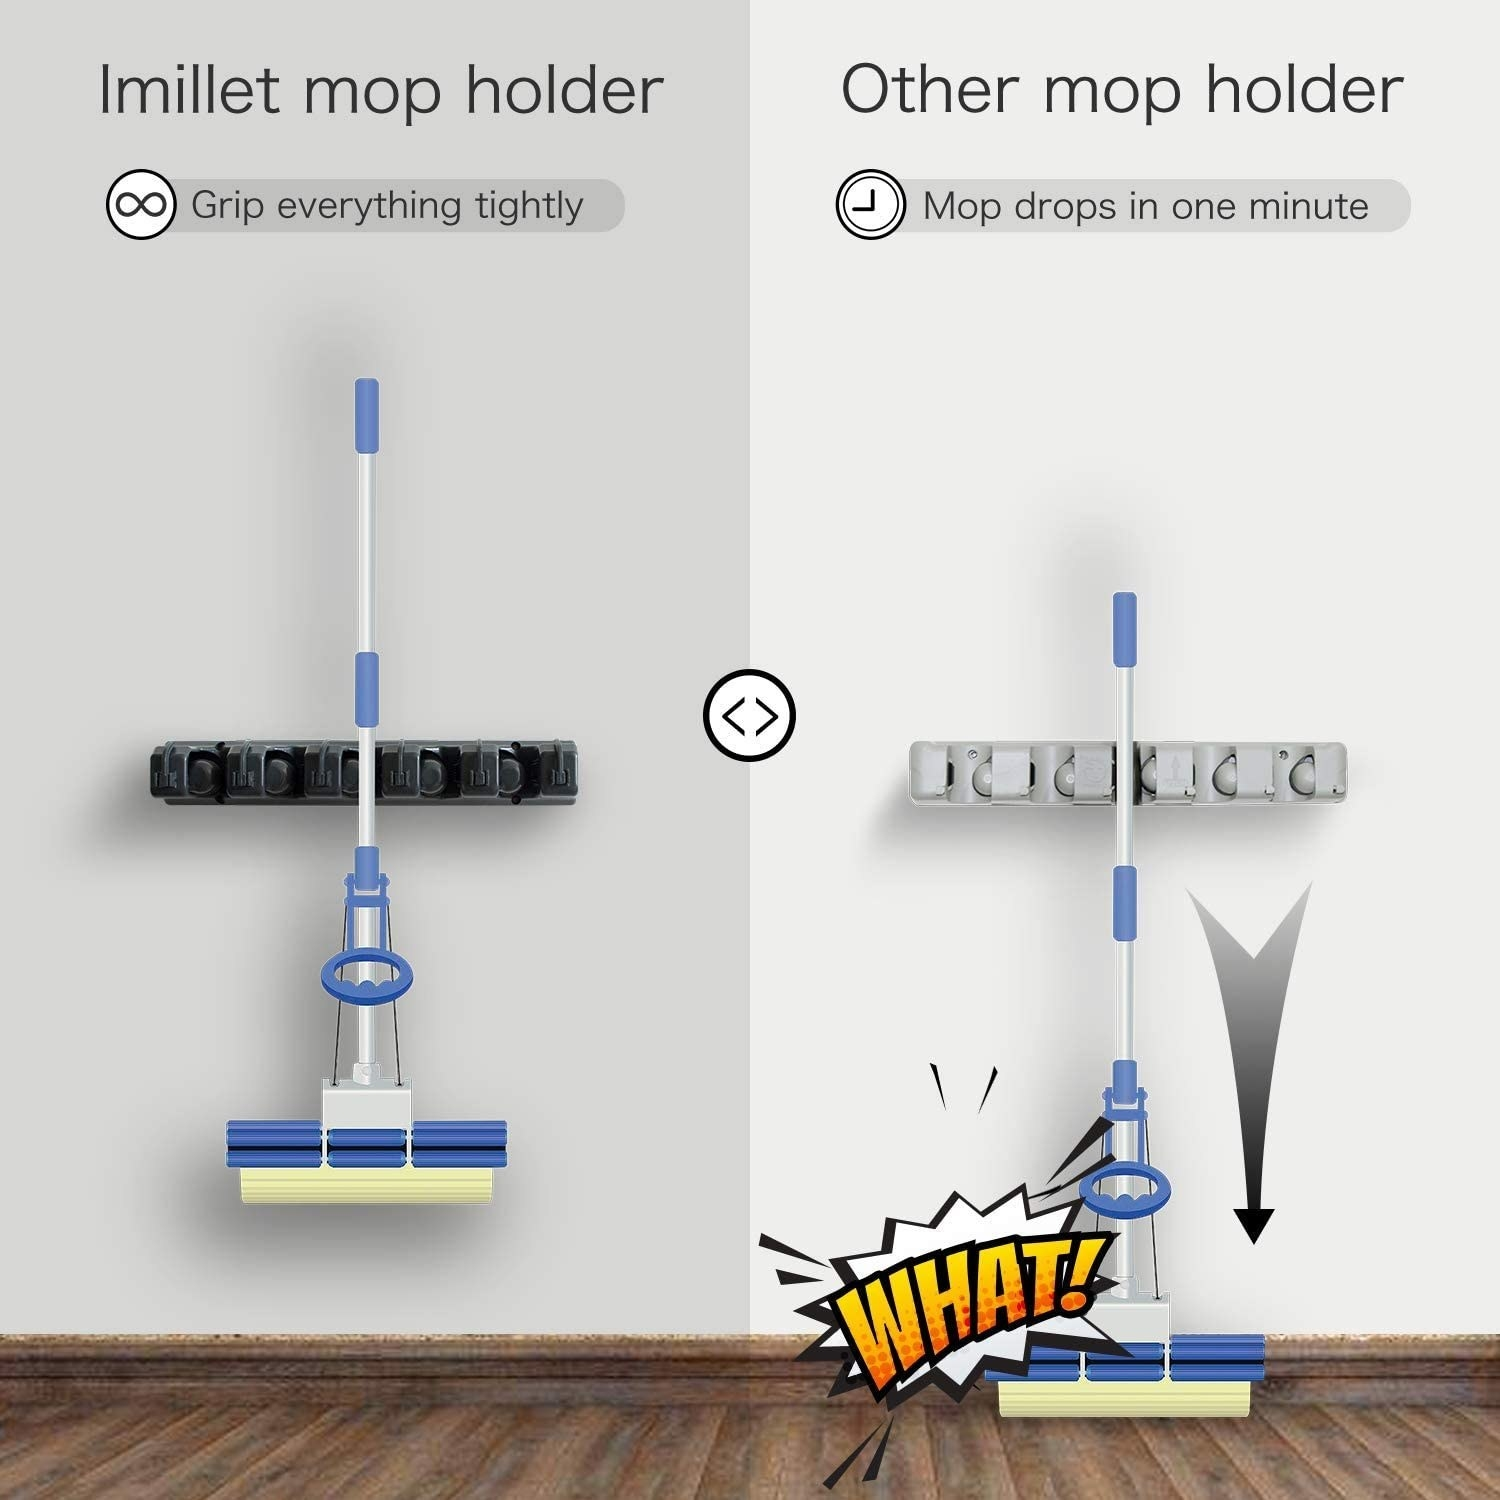 The product suspending a mop // Another brand's product can't hold the mop